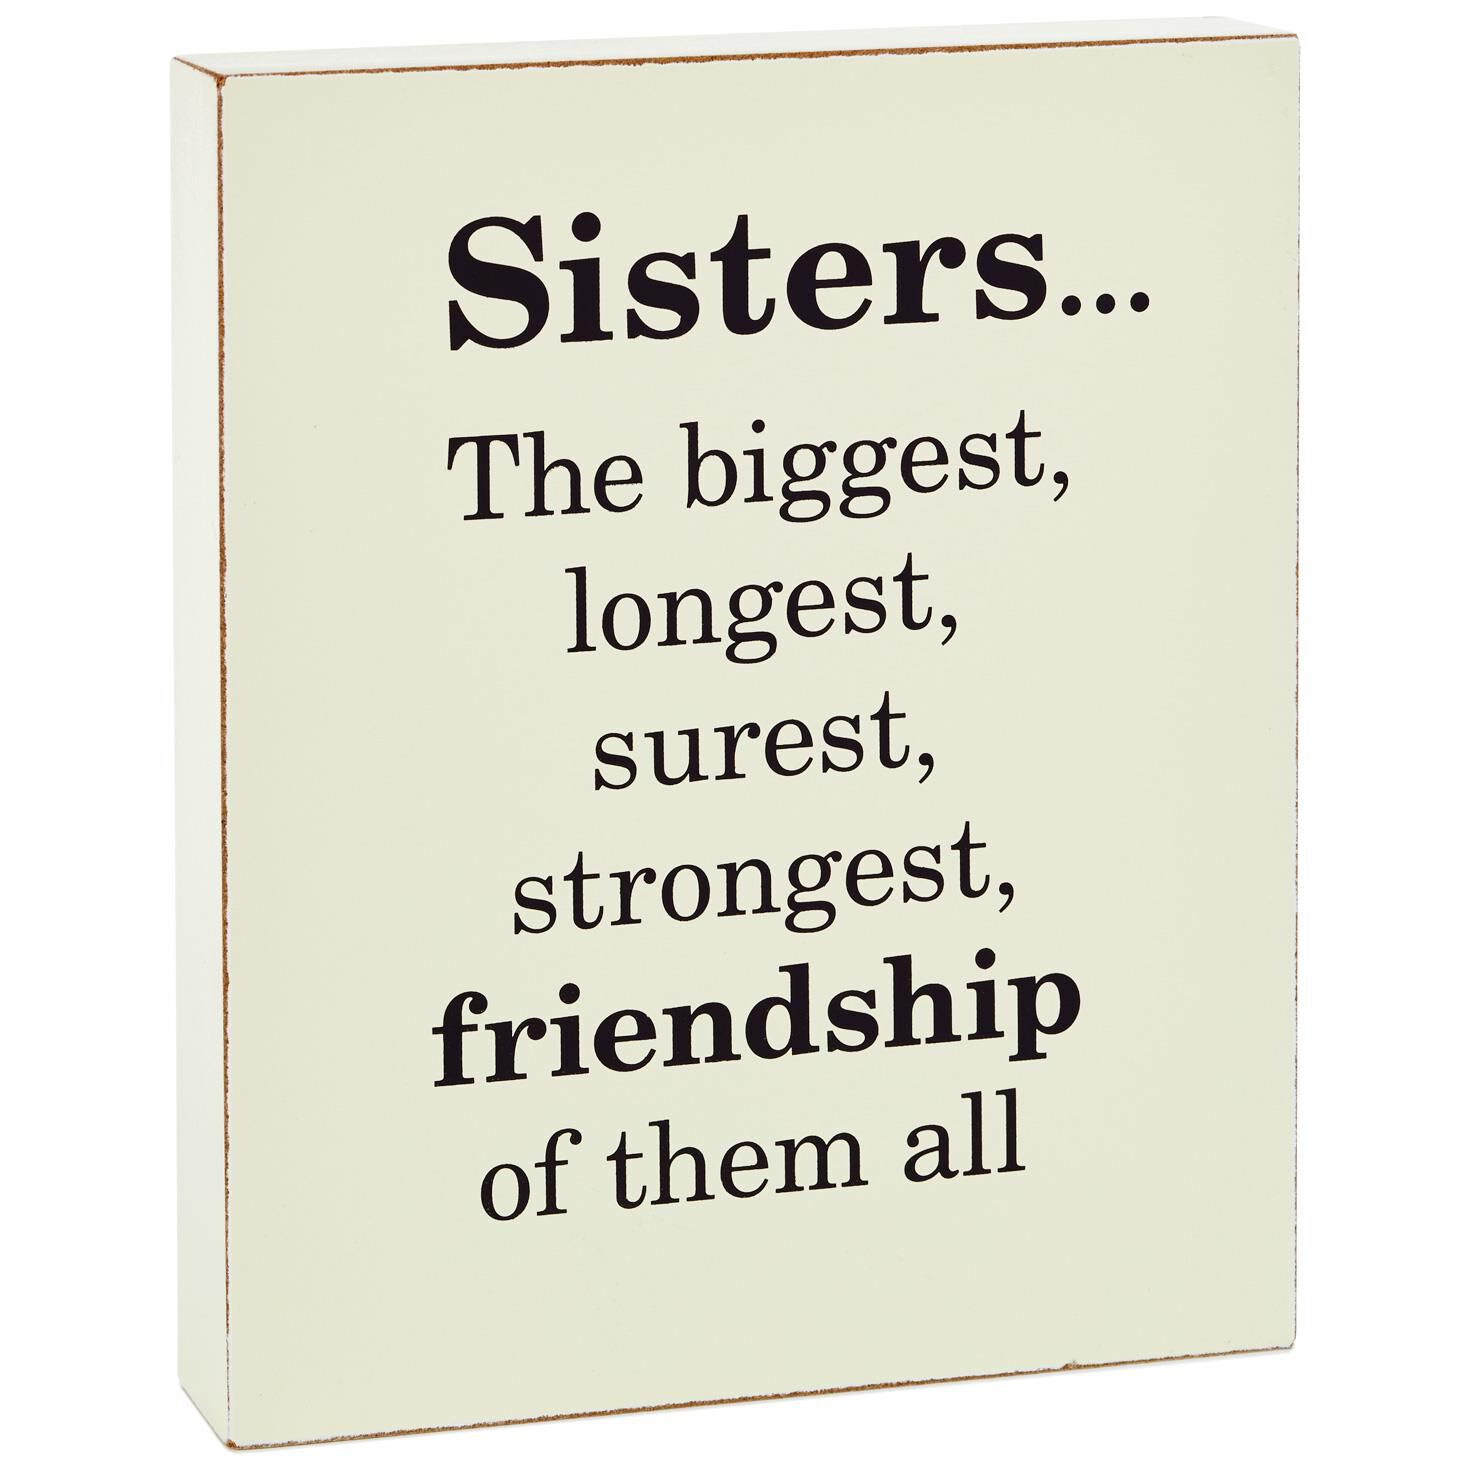 Sisters Friendship Wood Quote Sign, 5.75x7